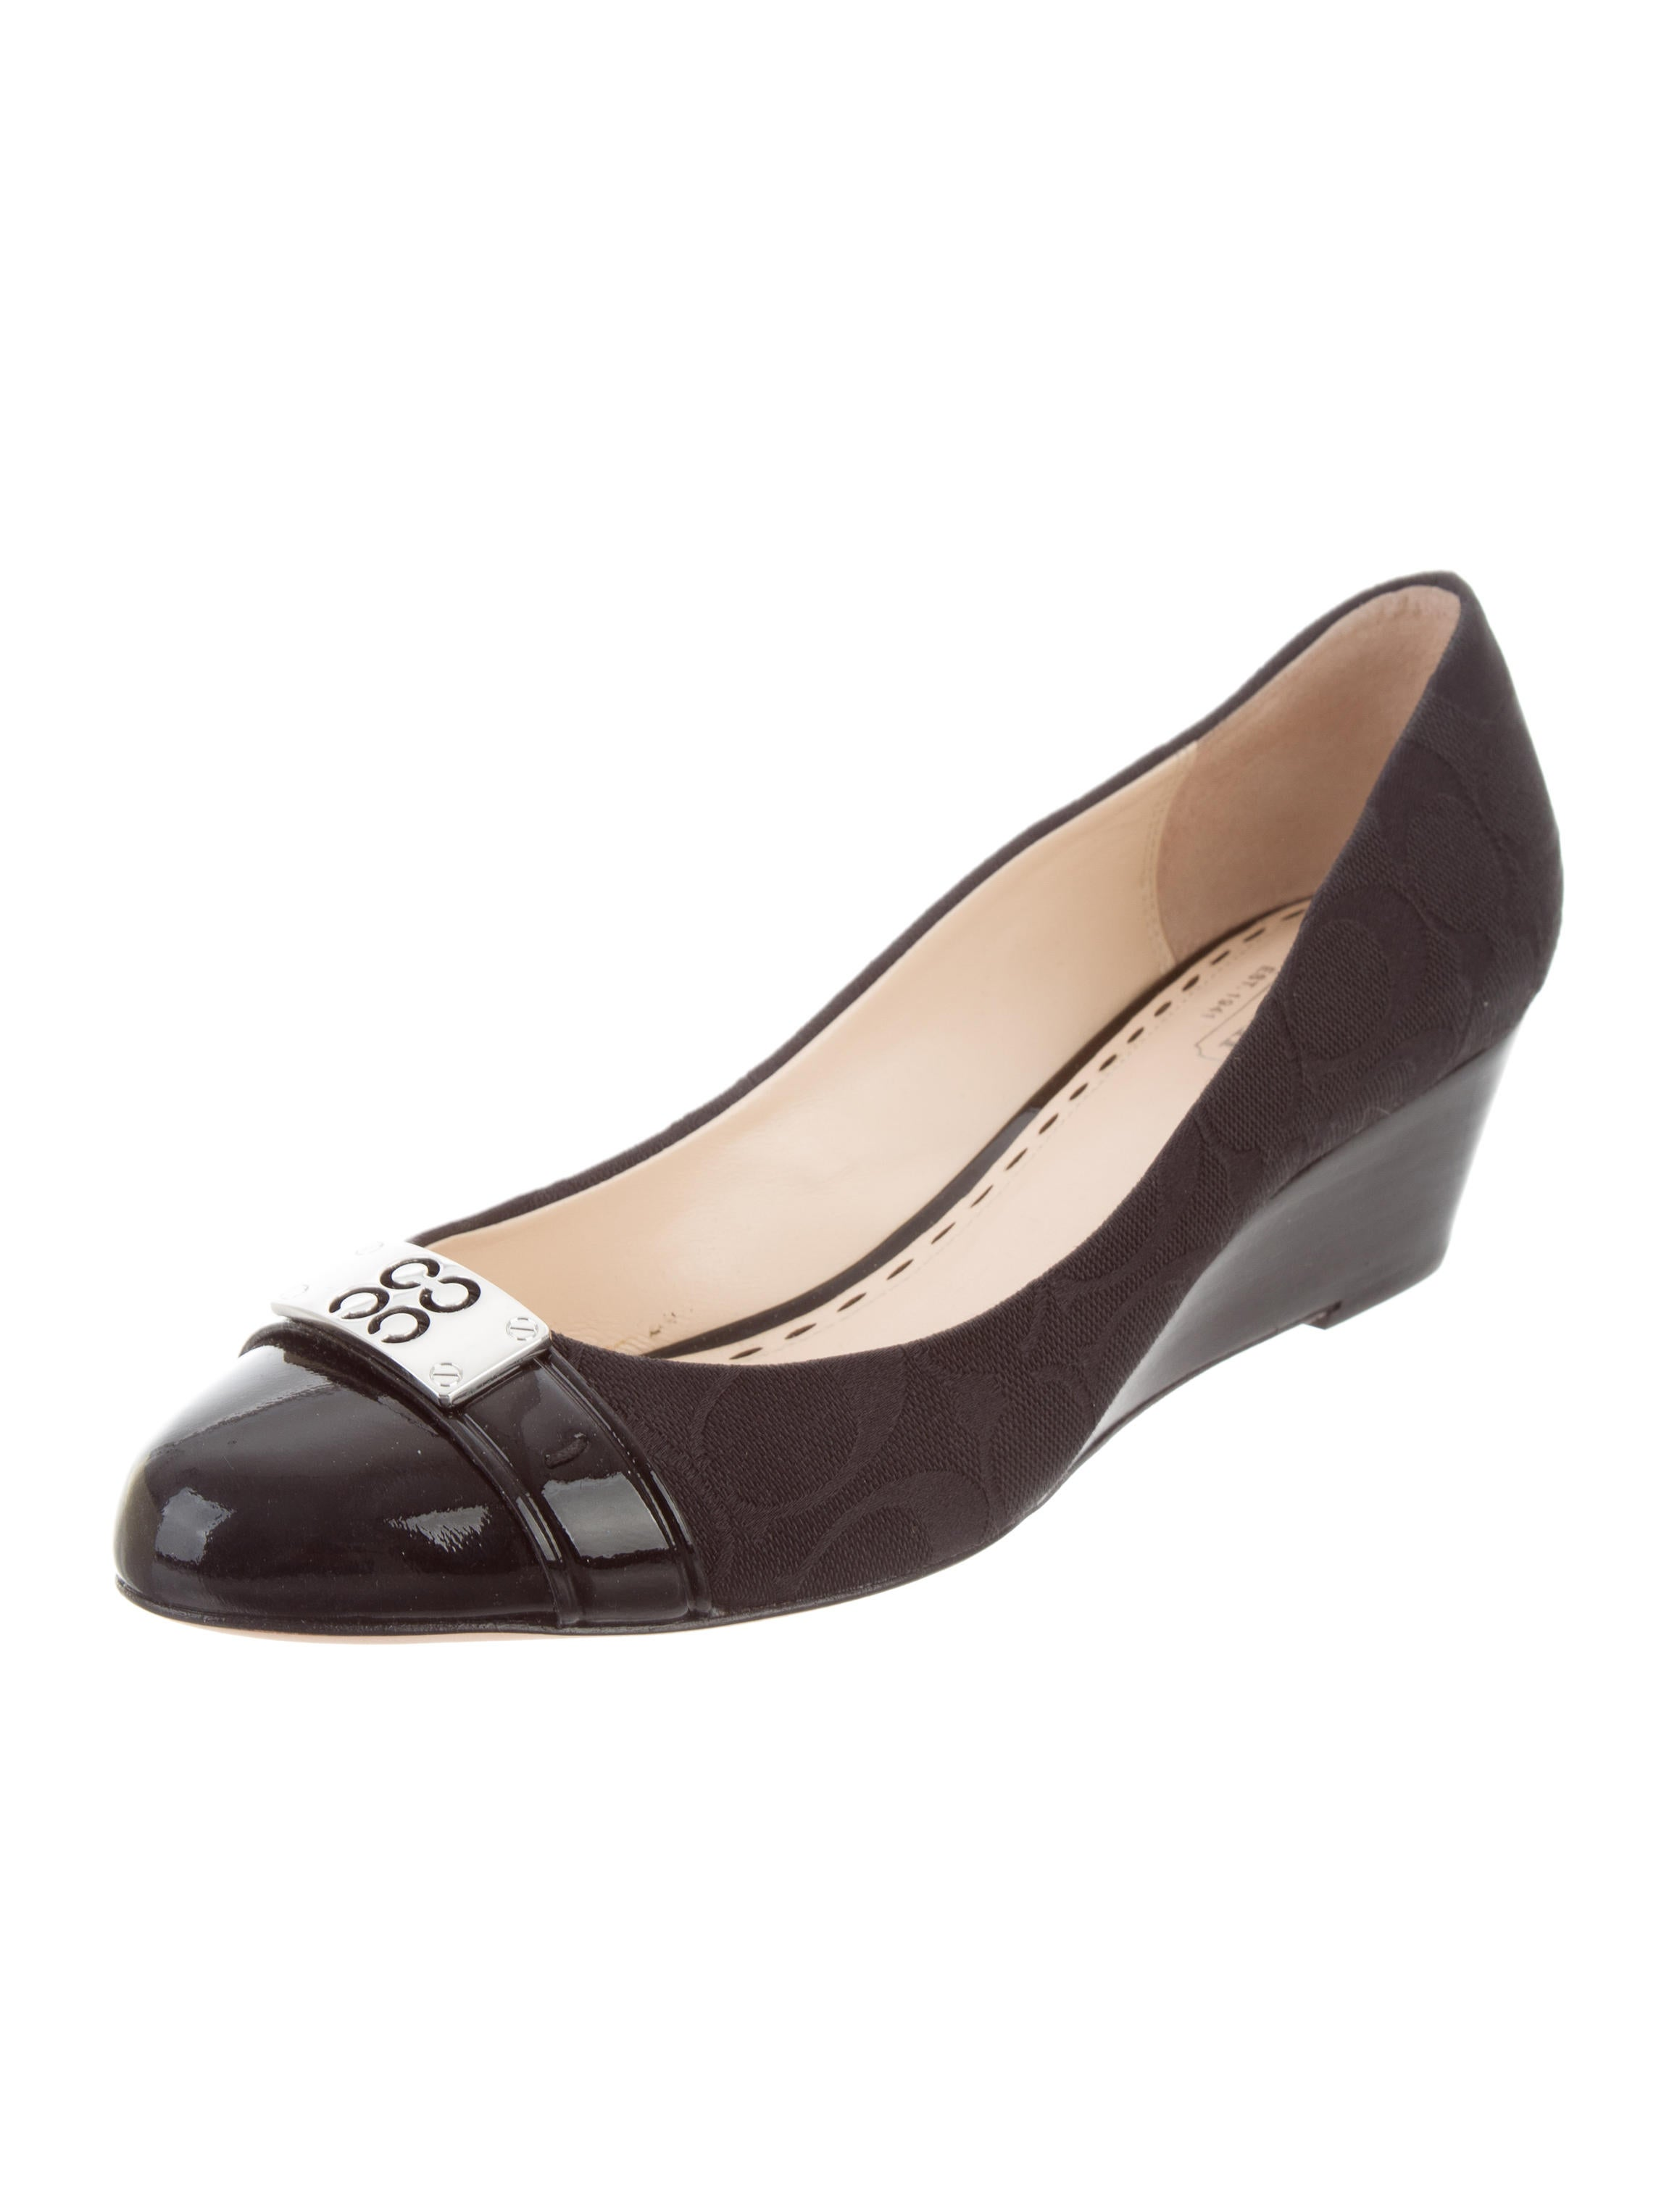 coach meryl cap toe wedges shoes cch21298 the realreal